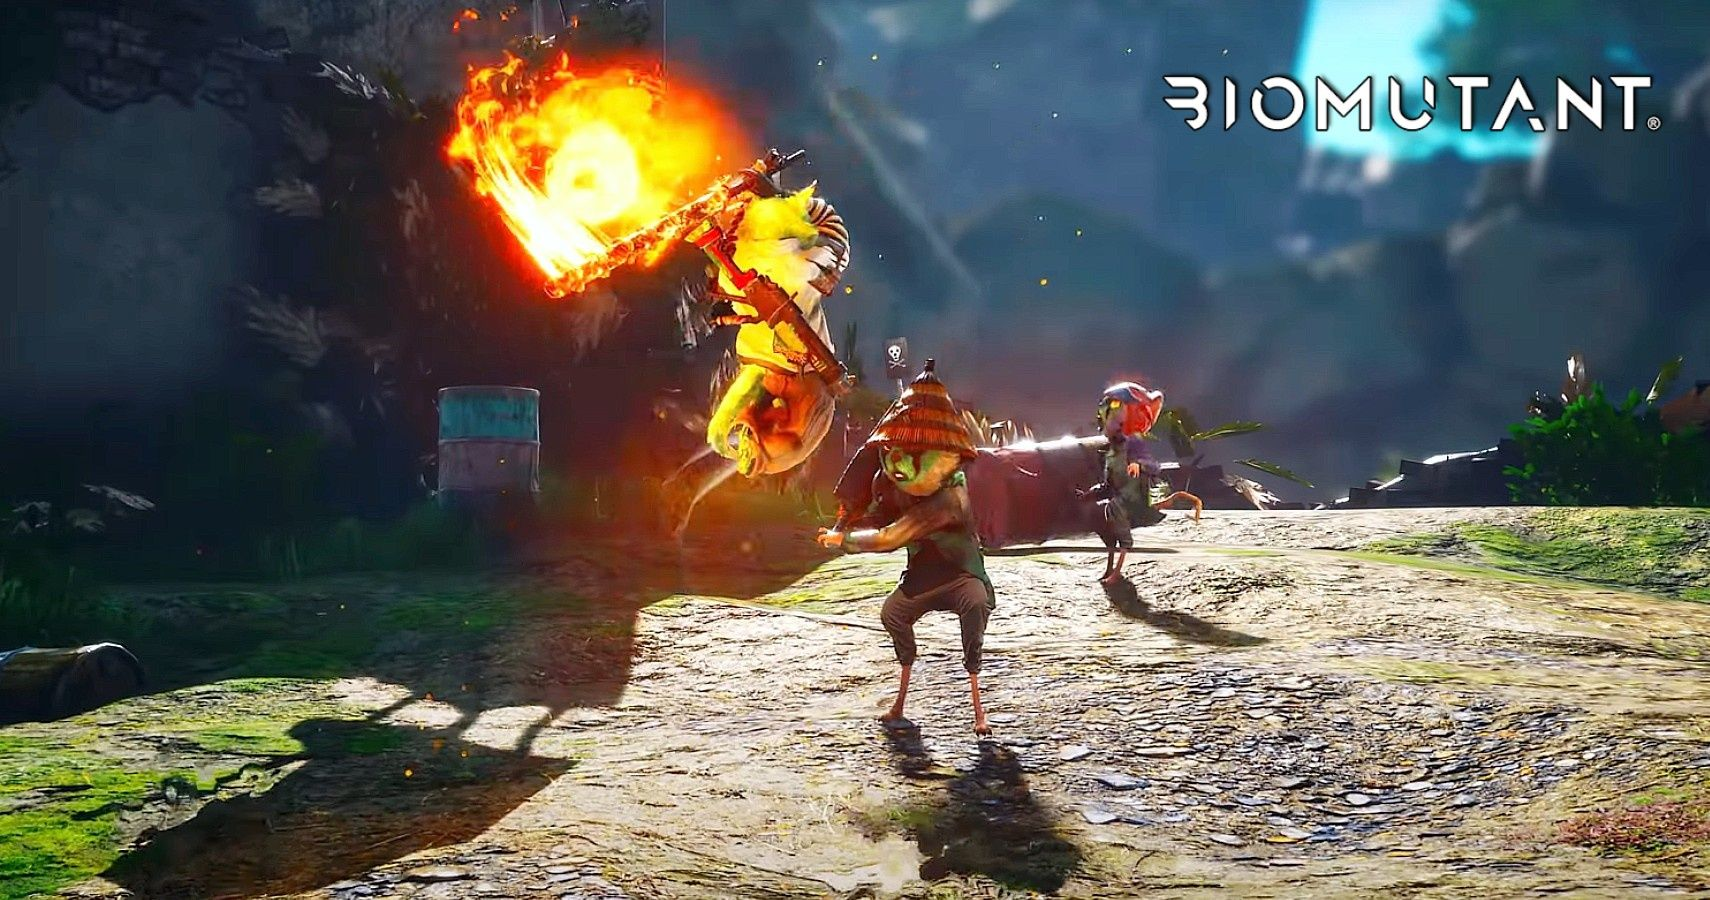 Biomutant Has Enough Content To Keep You Busy For 65 Hours And More, Dev Says